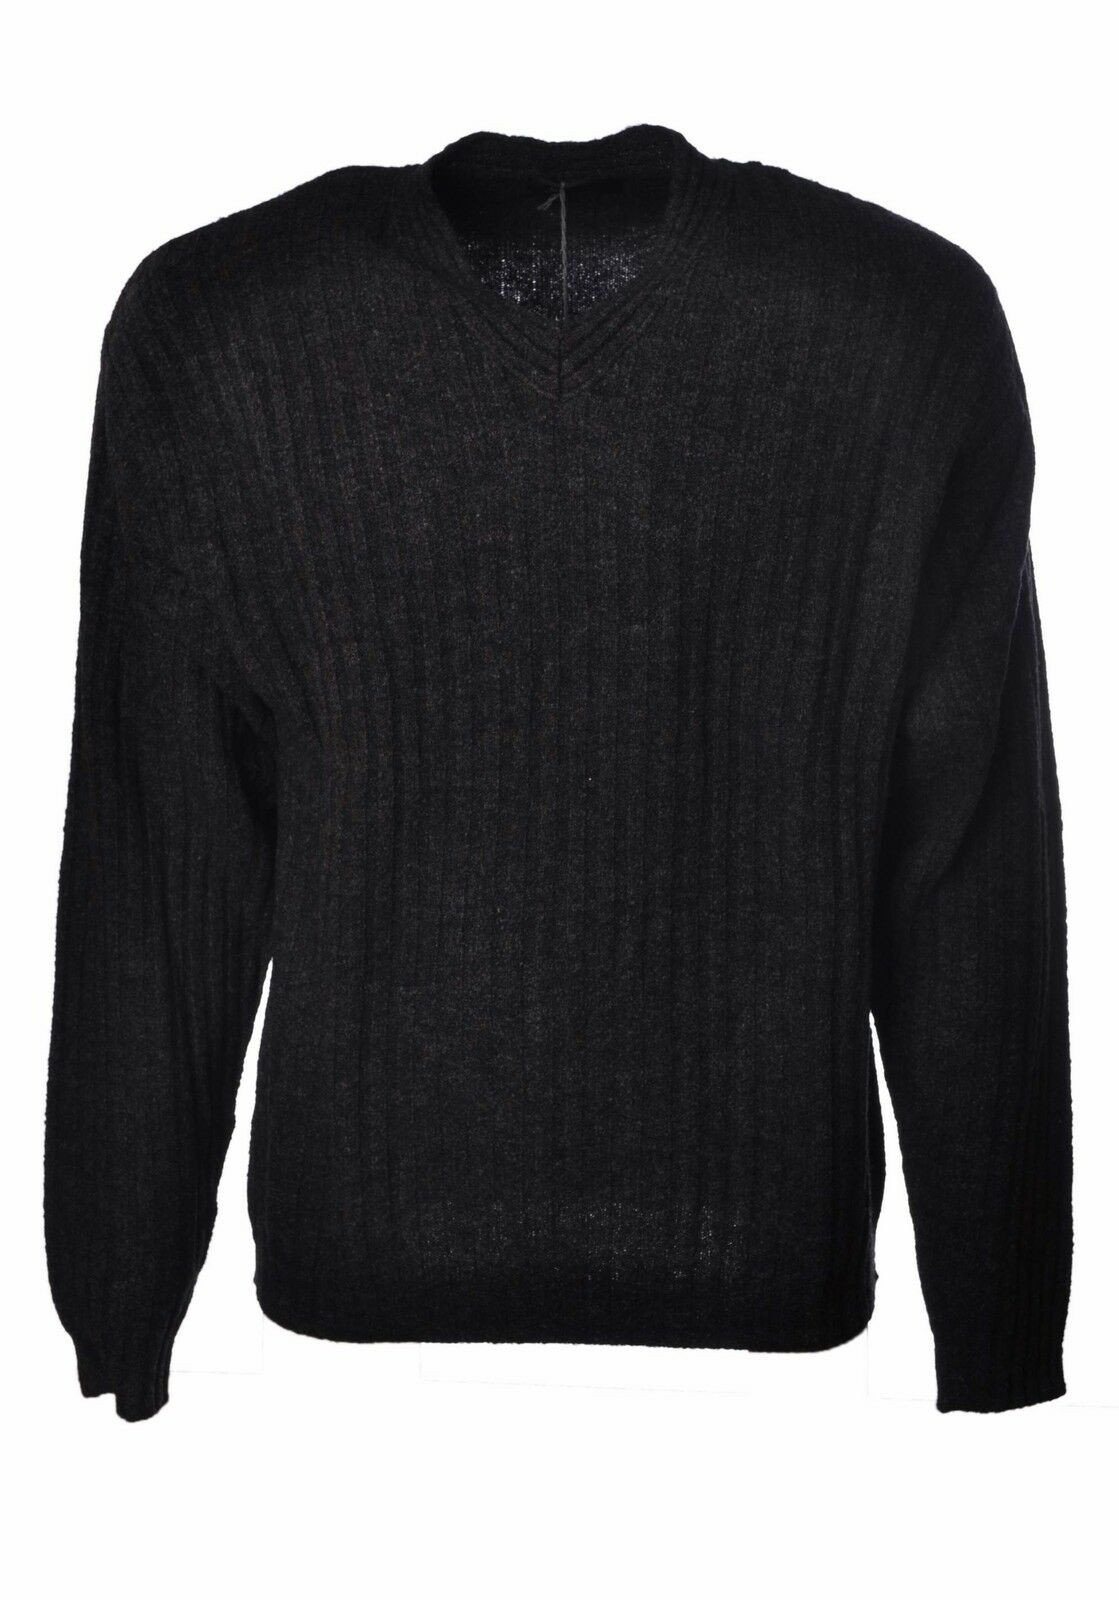 Jey Coleman  -  Sweaters - Male - Grau - 3767728A180847